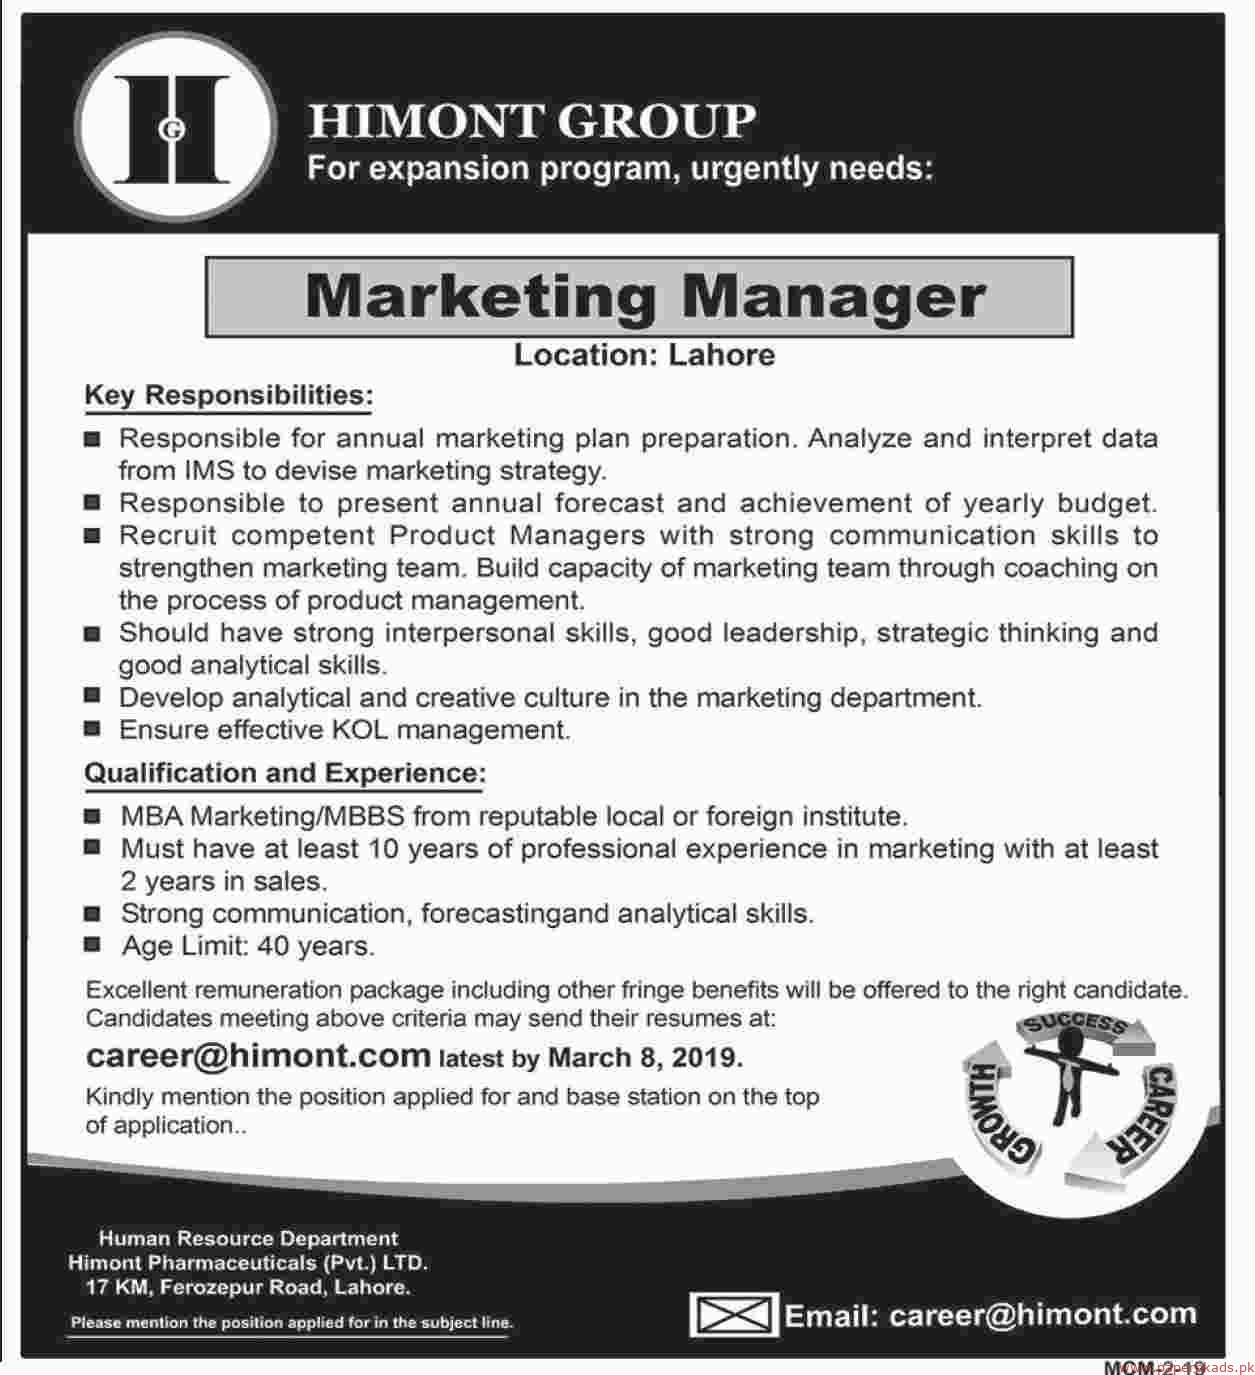 HIMONT Group Jobs 2019 Latest